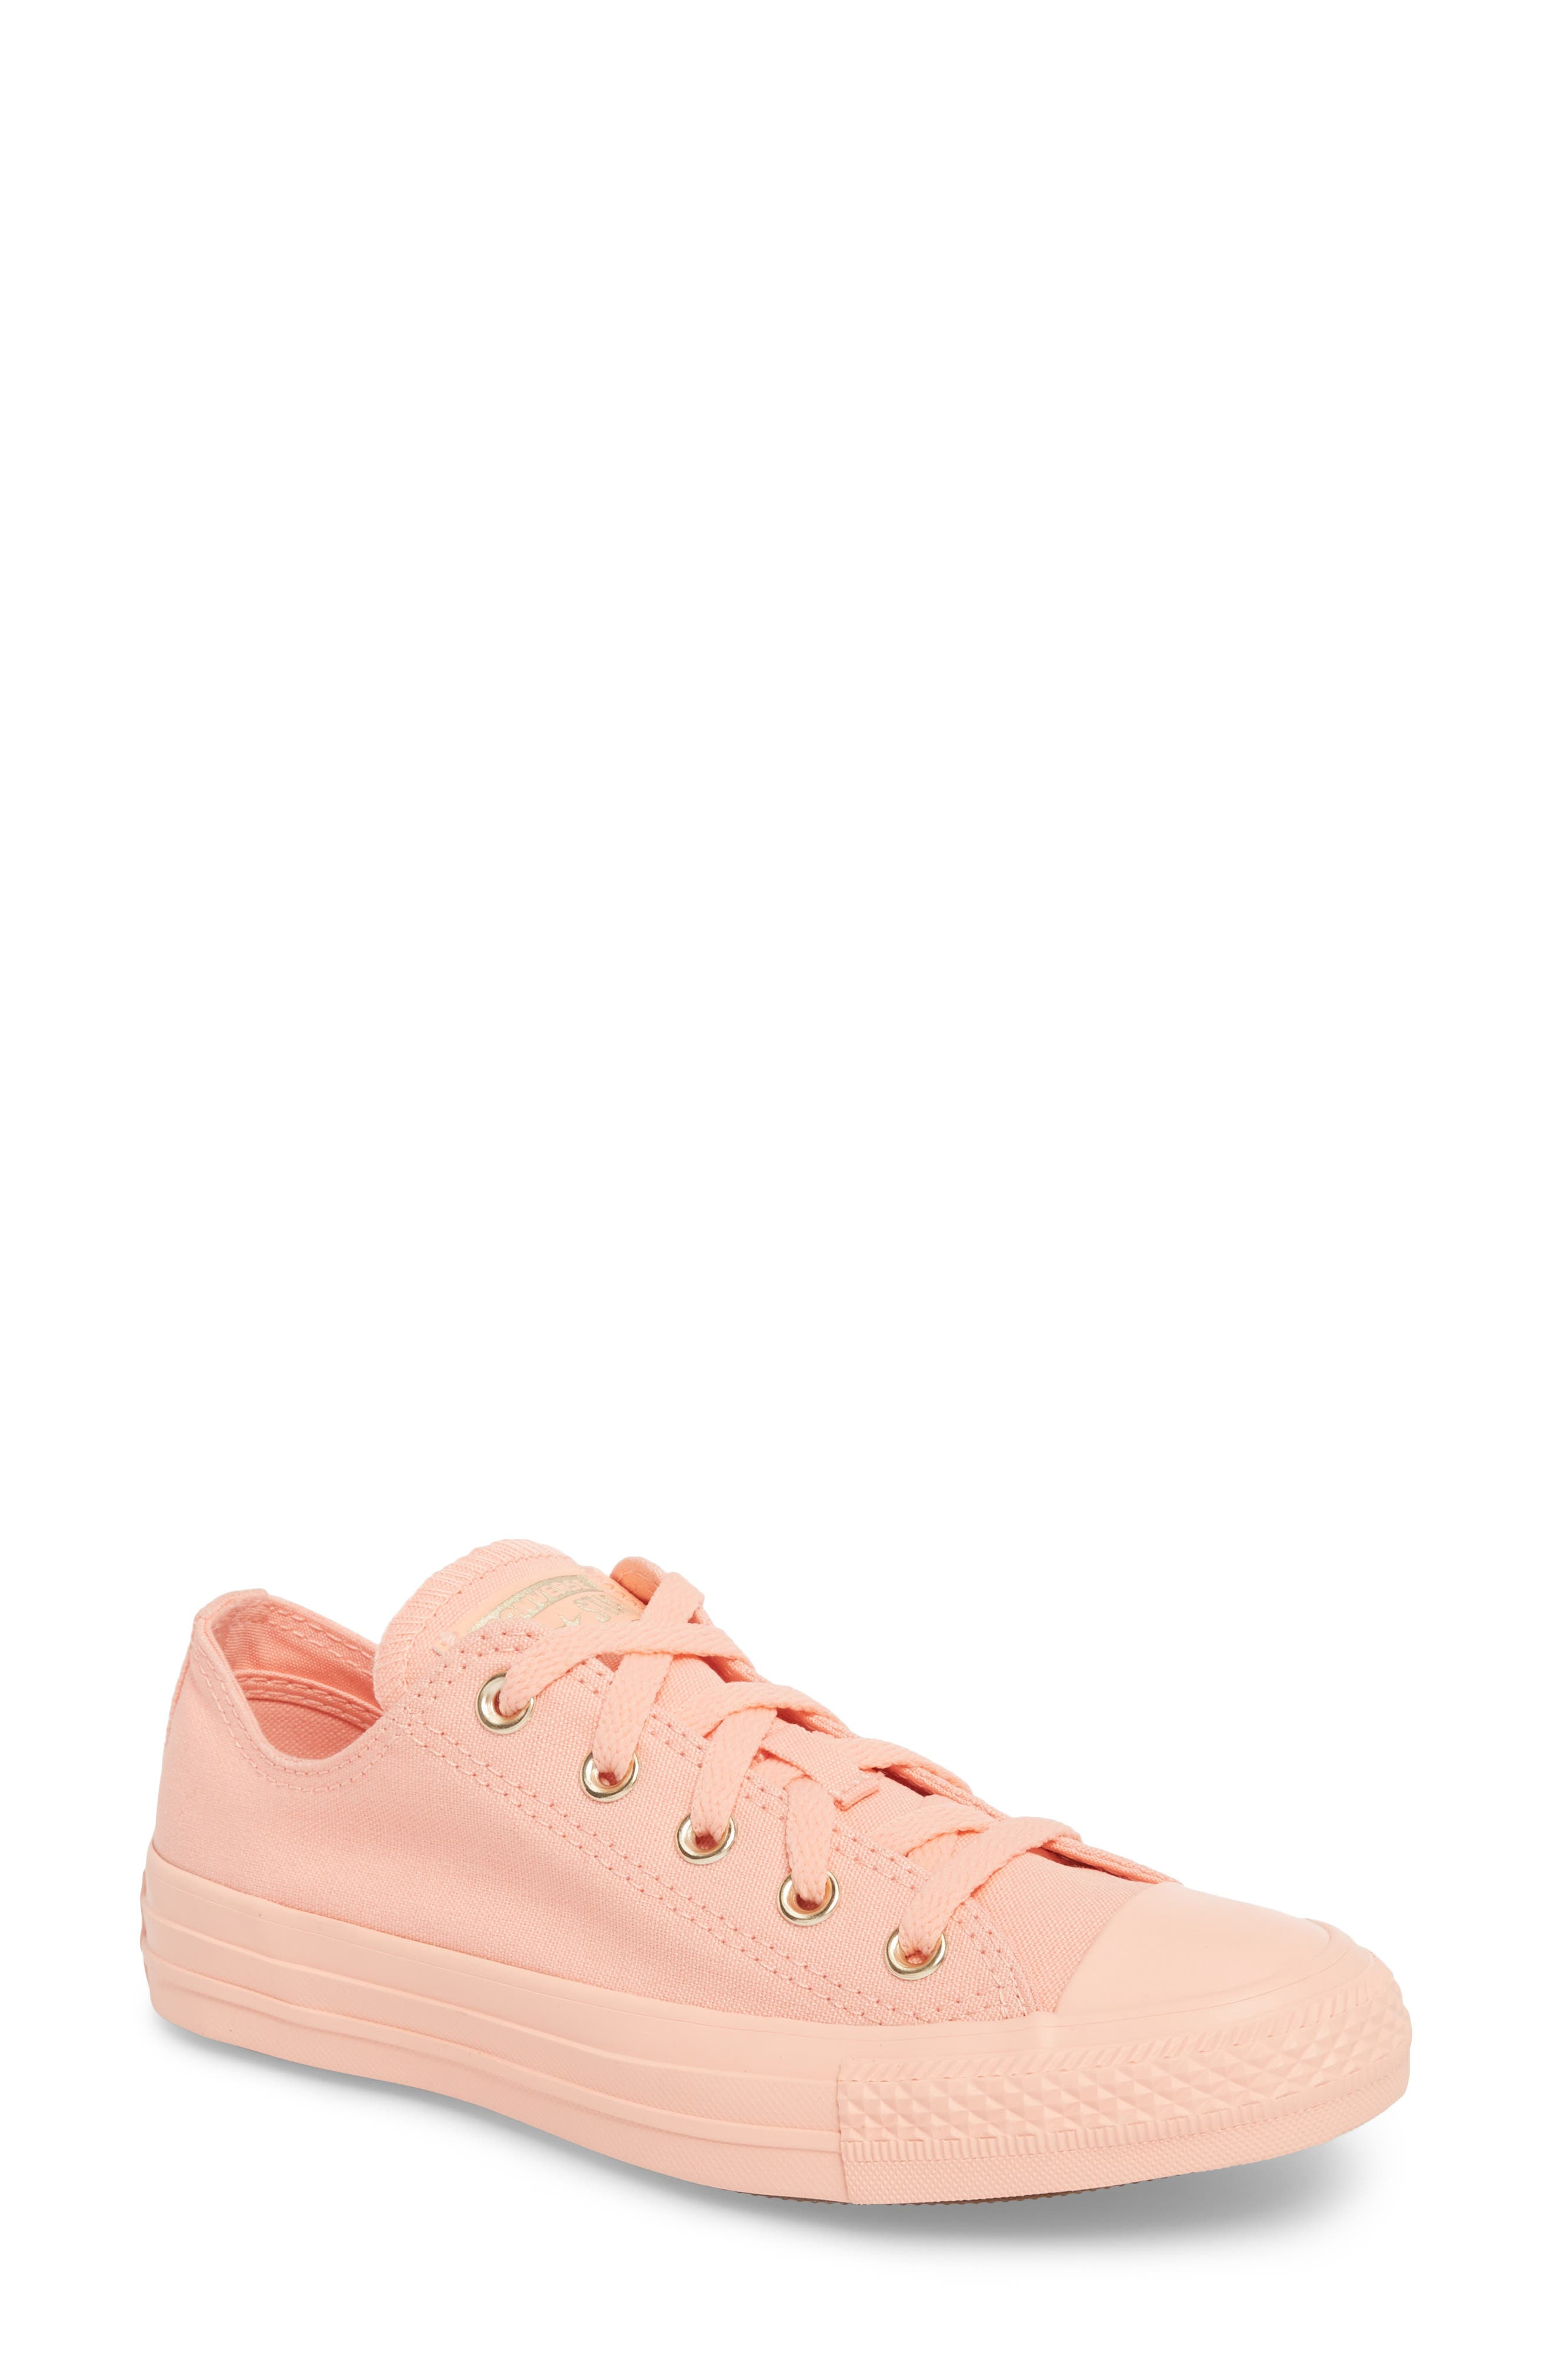 Chuck Taylor<sup>®</sup> All Star<sup>®</sup> Seasonal Color Sneaker,                         Main,                         color, Pale Coral